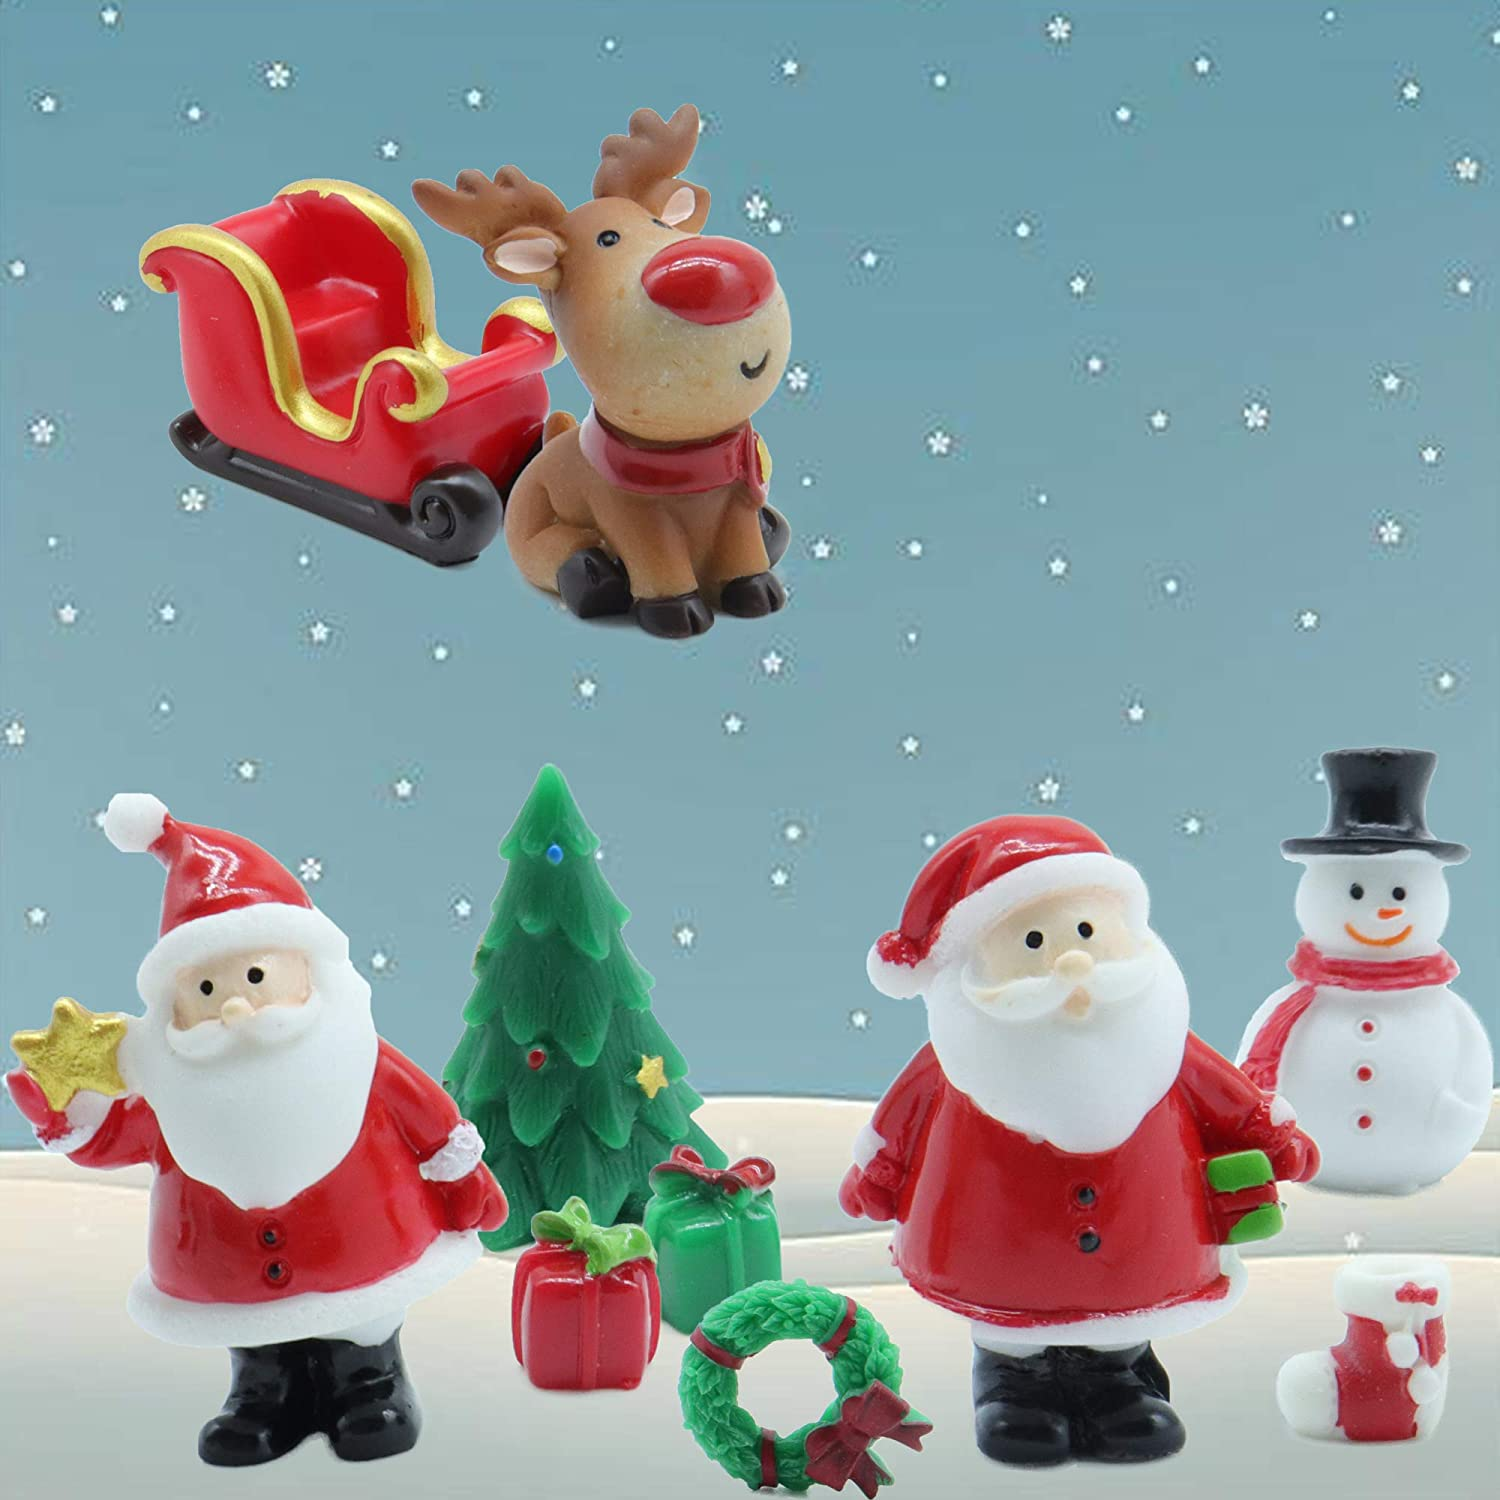 DIY Miniature Garden Decorations,Santa Claus Snowman Christmas Tree Seated elk Reindeer Miniature Fairy Garden Accessories Sock Christmas Wreath Present Fairy Garden Kit-10pcs Seated Christmas 2